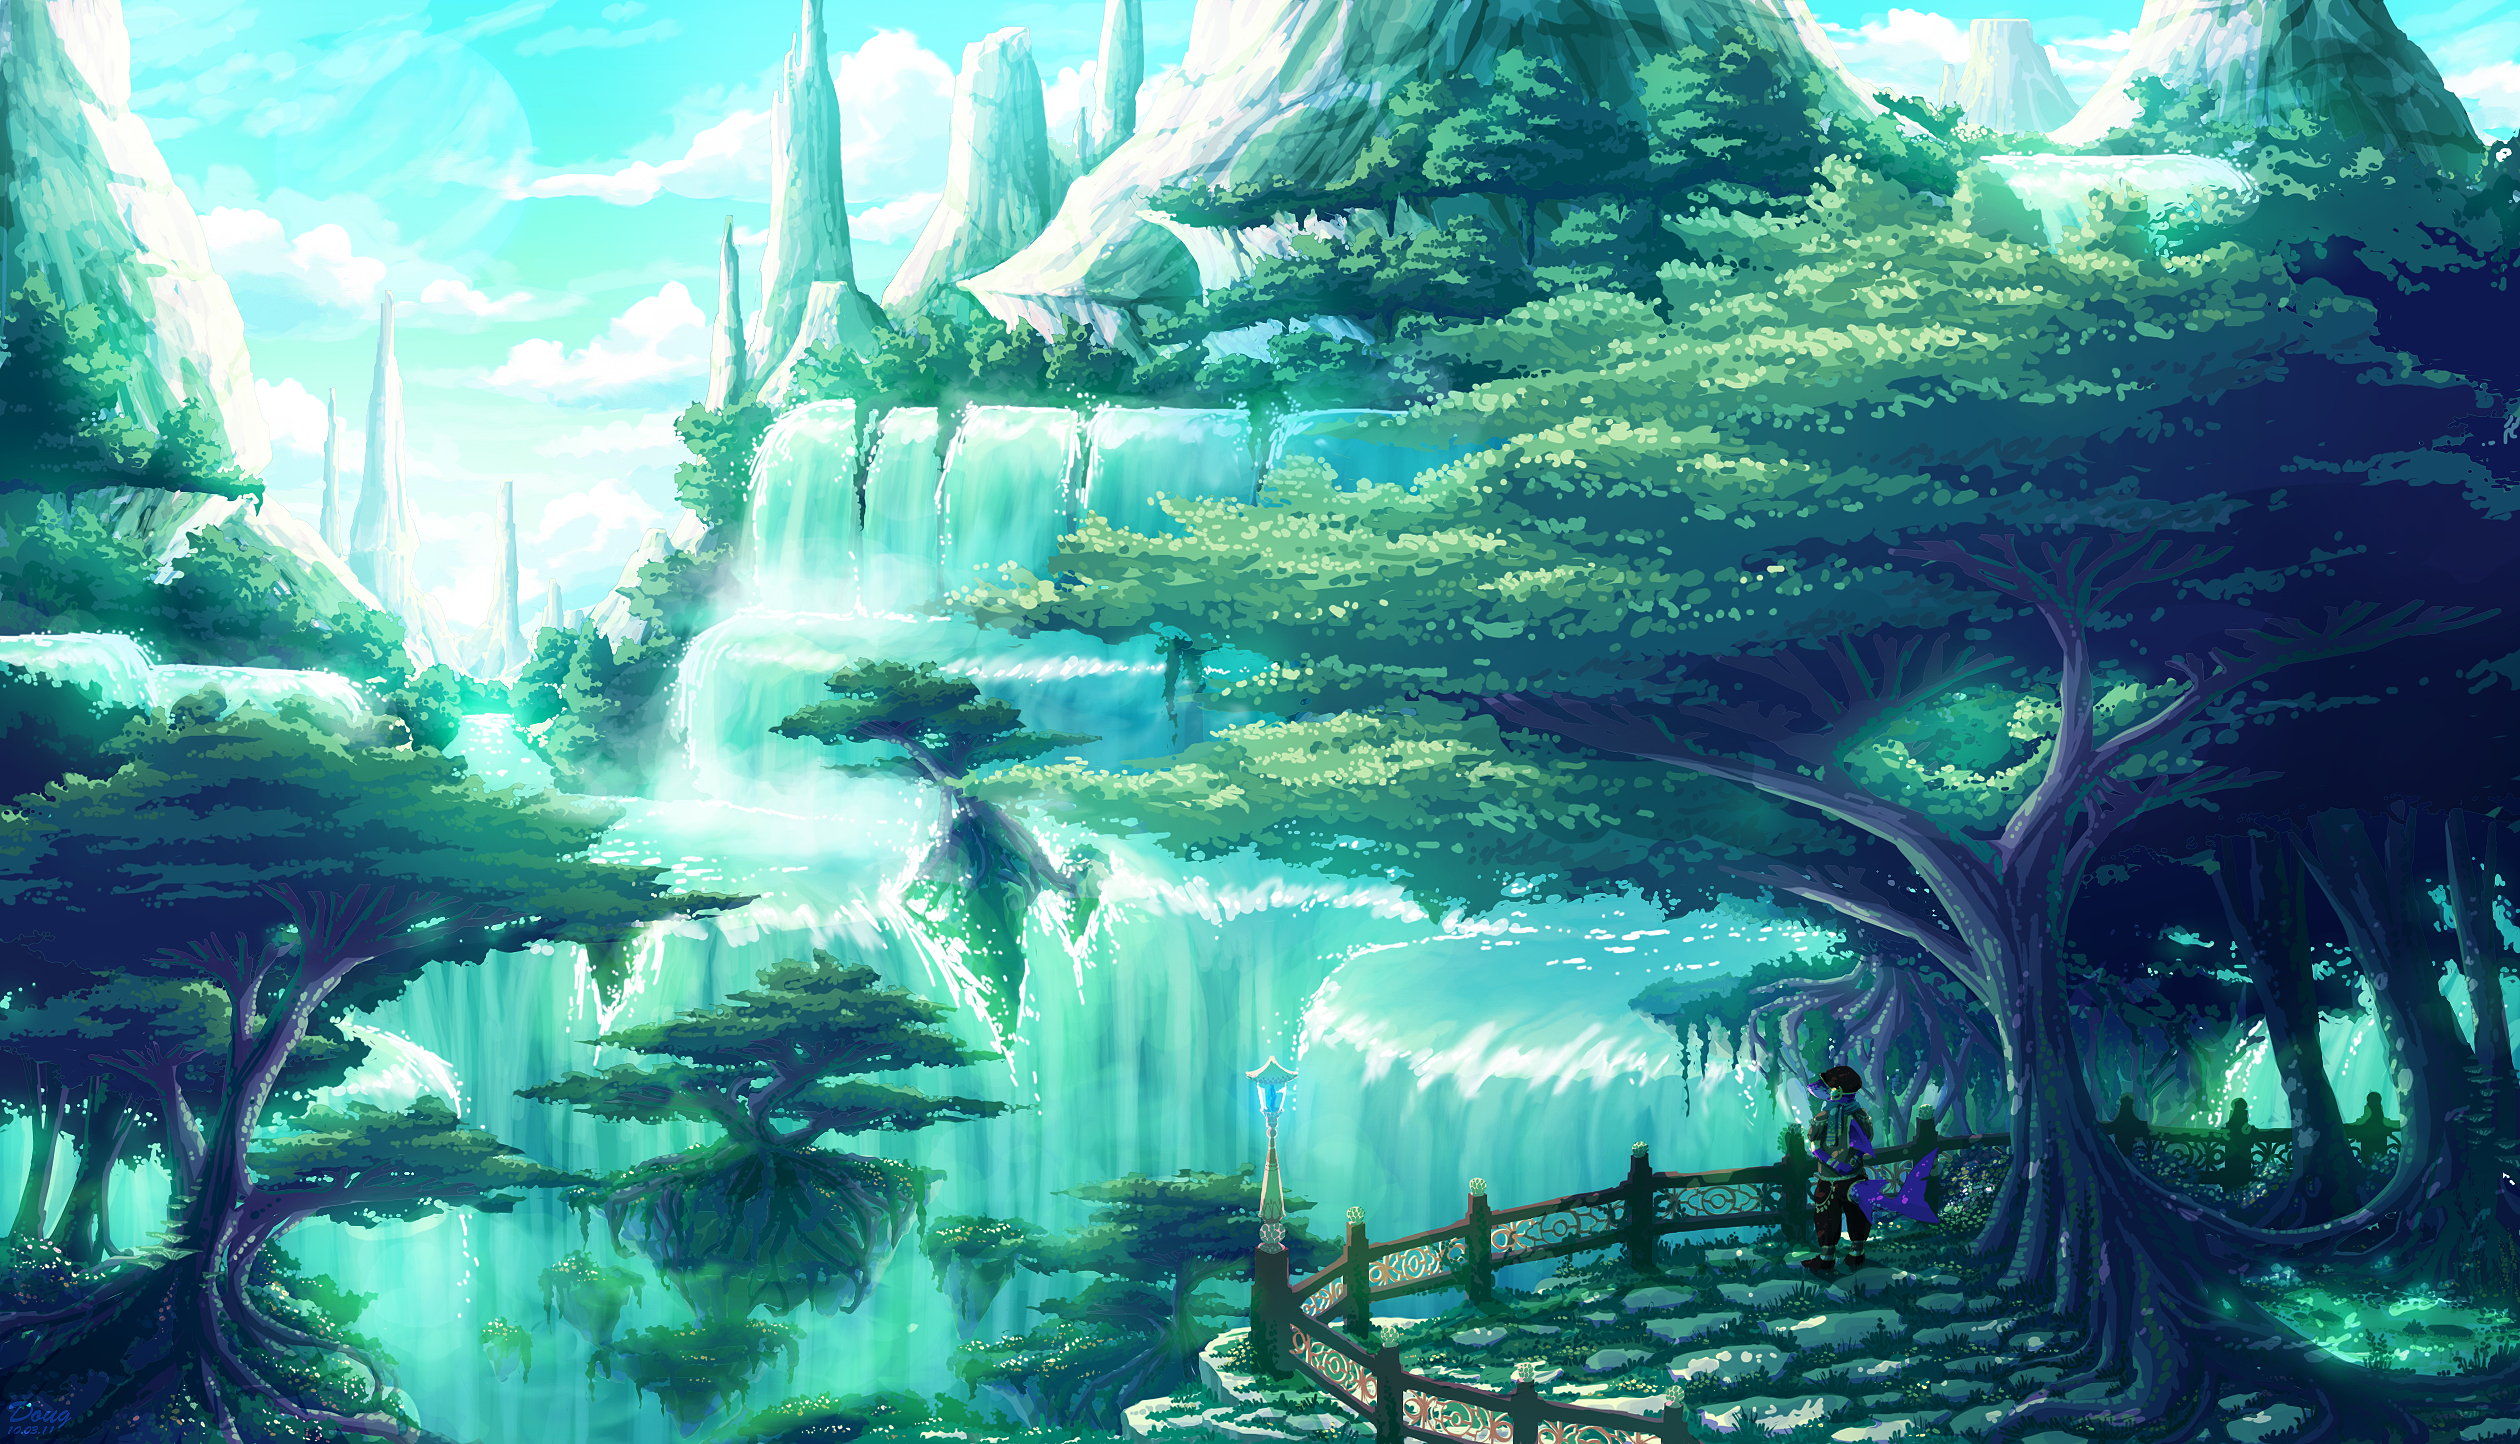 Fantasy landscape hd wallpapers pictures images - Fantasy scenery wallpaper ...